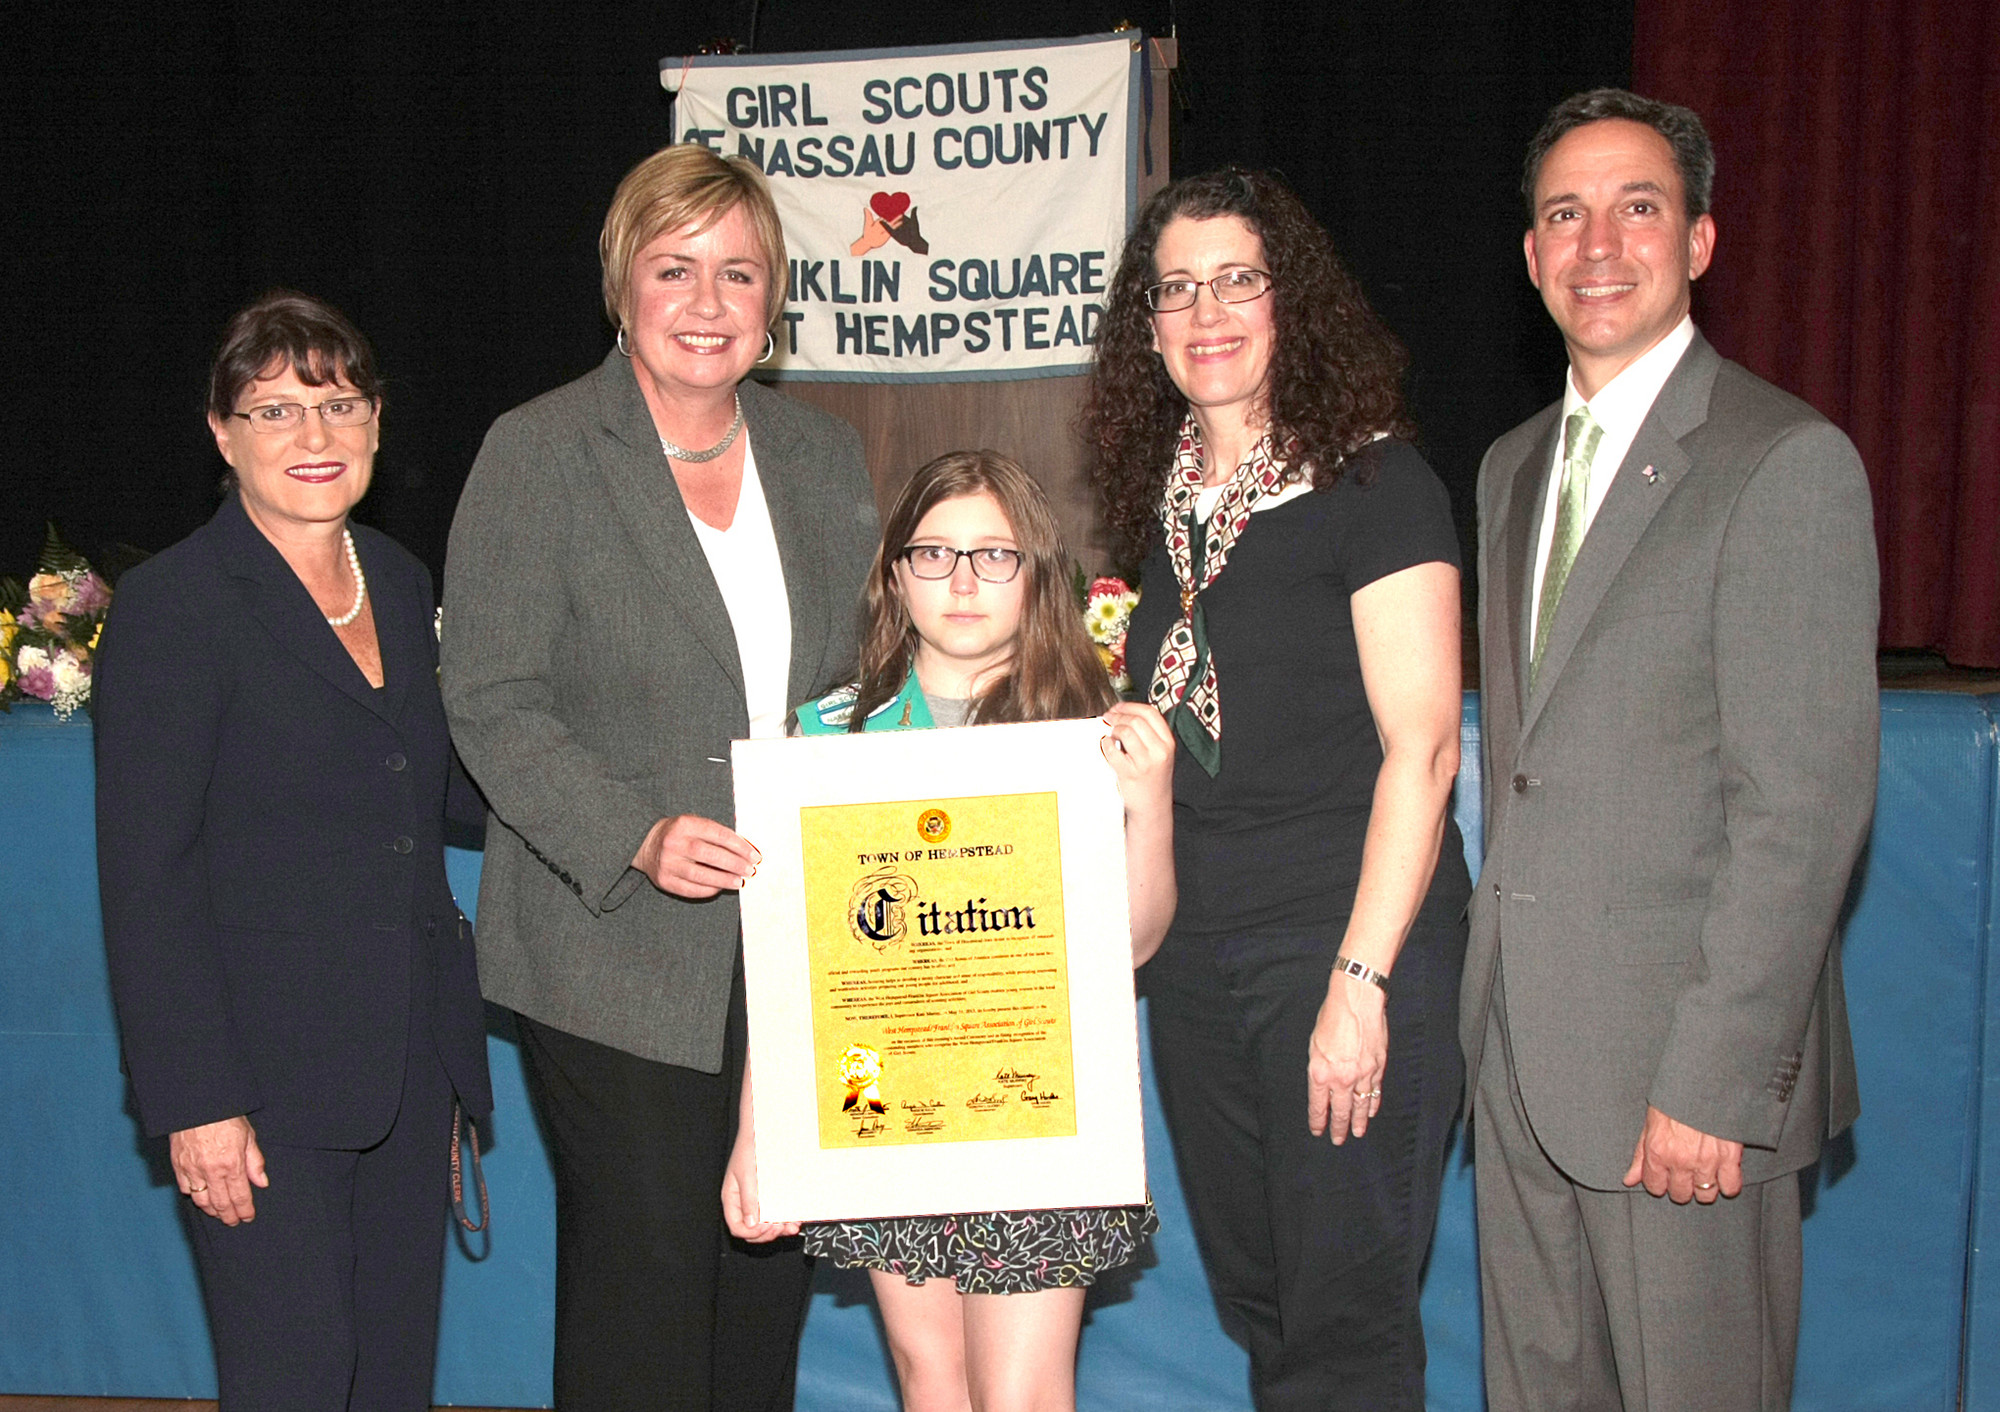 New York State Senator Jack Martins, Nassau County Clerk Maureen O'Connell, Town of Hempstead Supervisor Kate Murray congratulate Troop 1325 with the Bronze Award alongside Leader Peggy Asciutto.